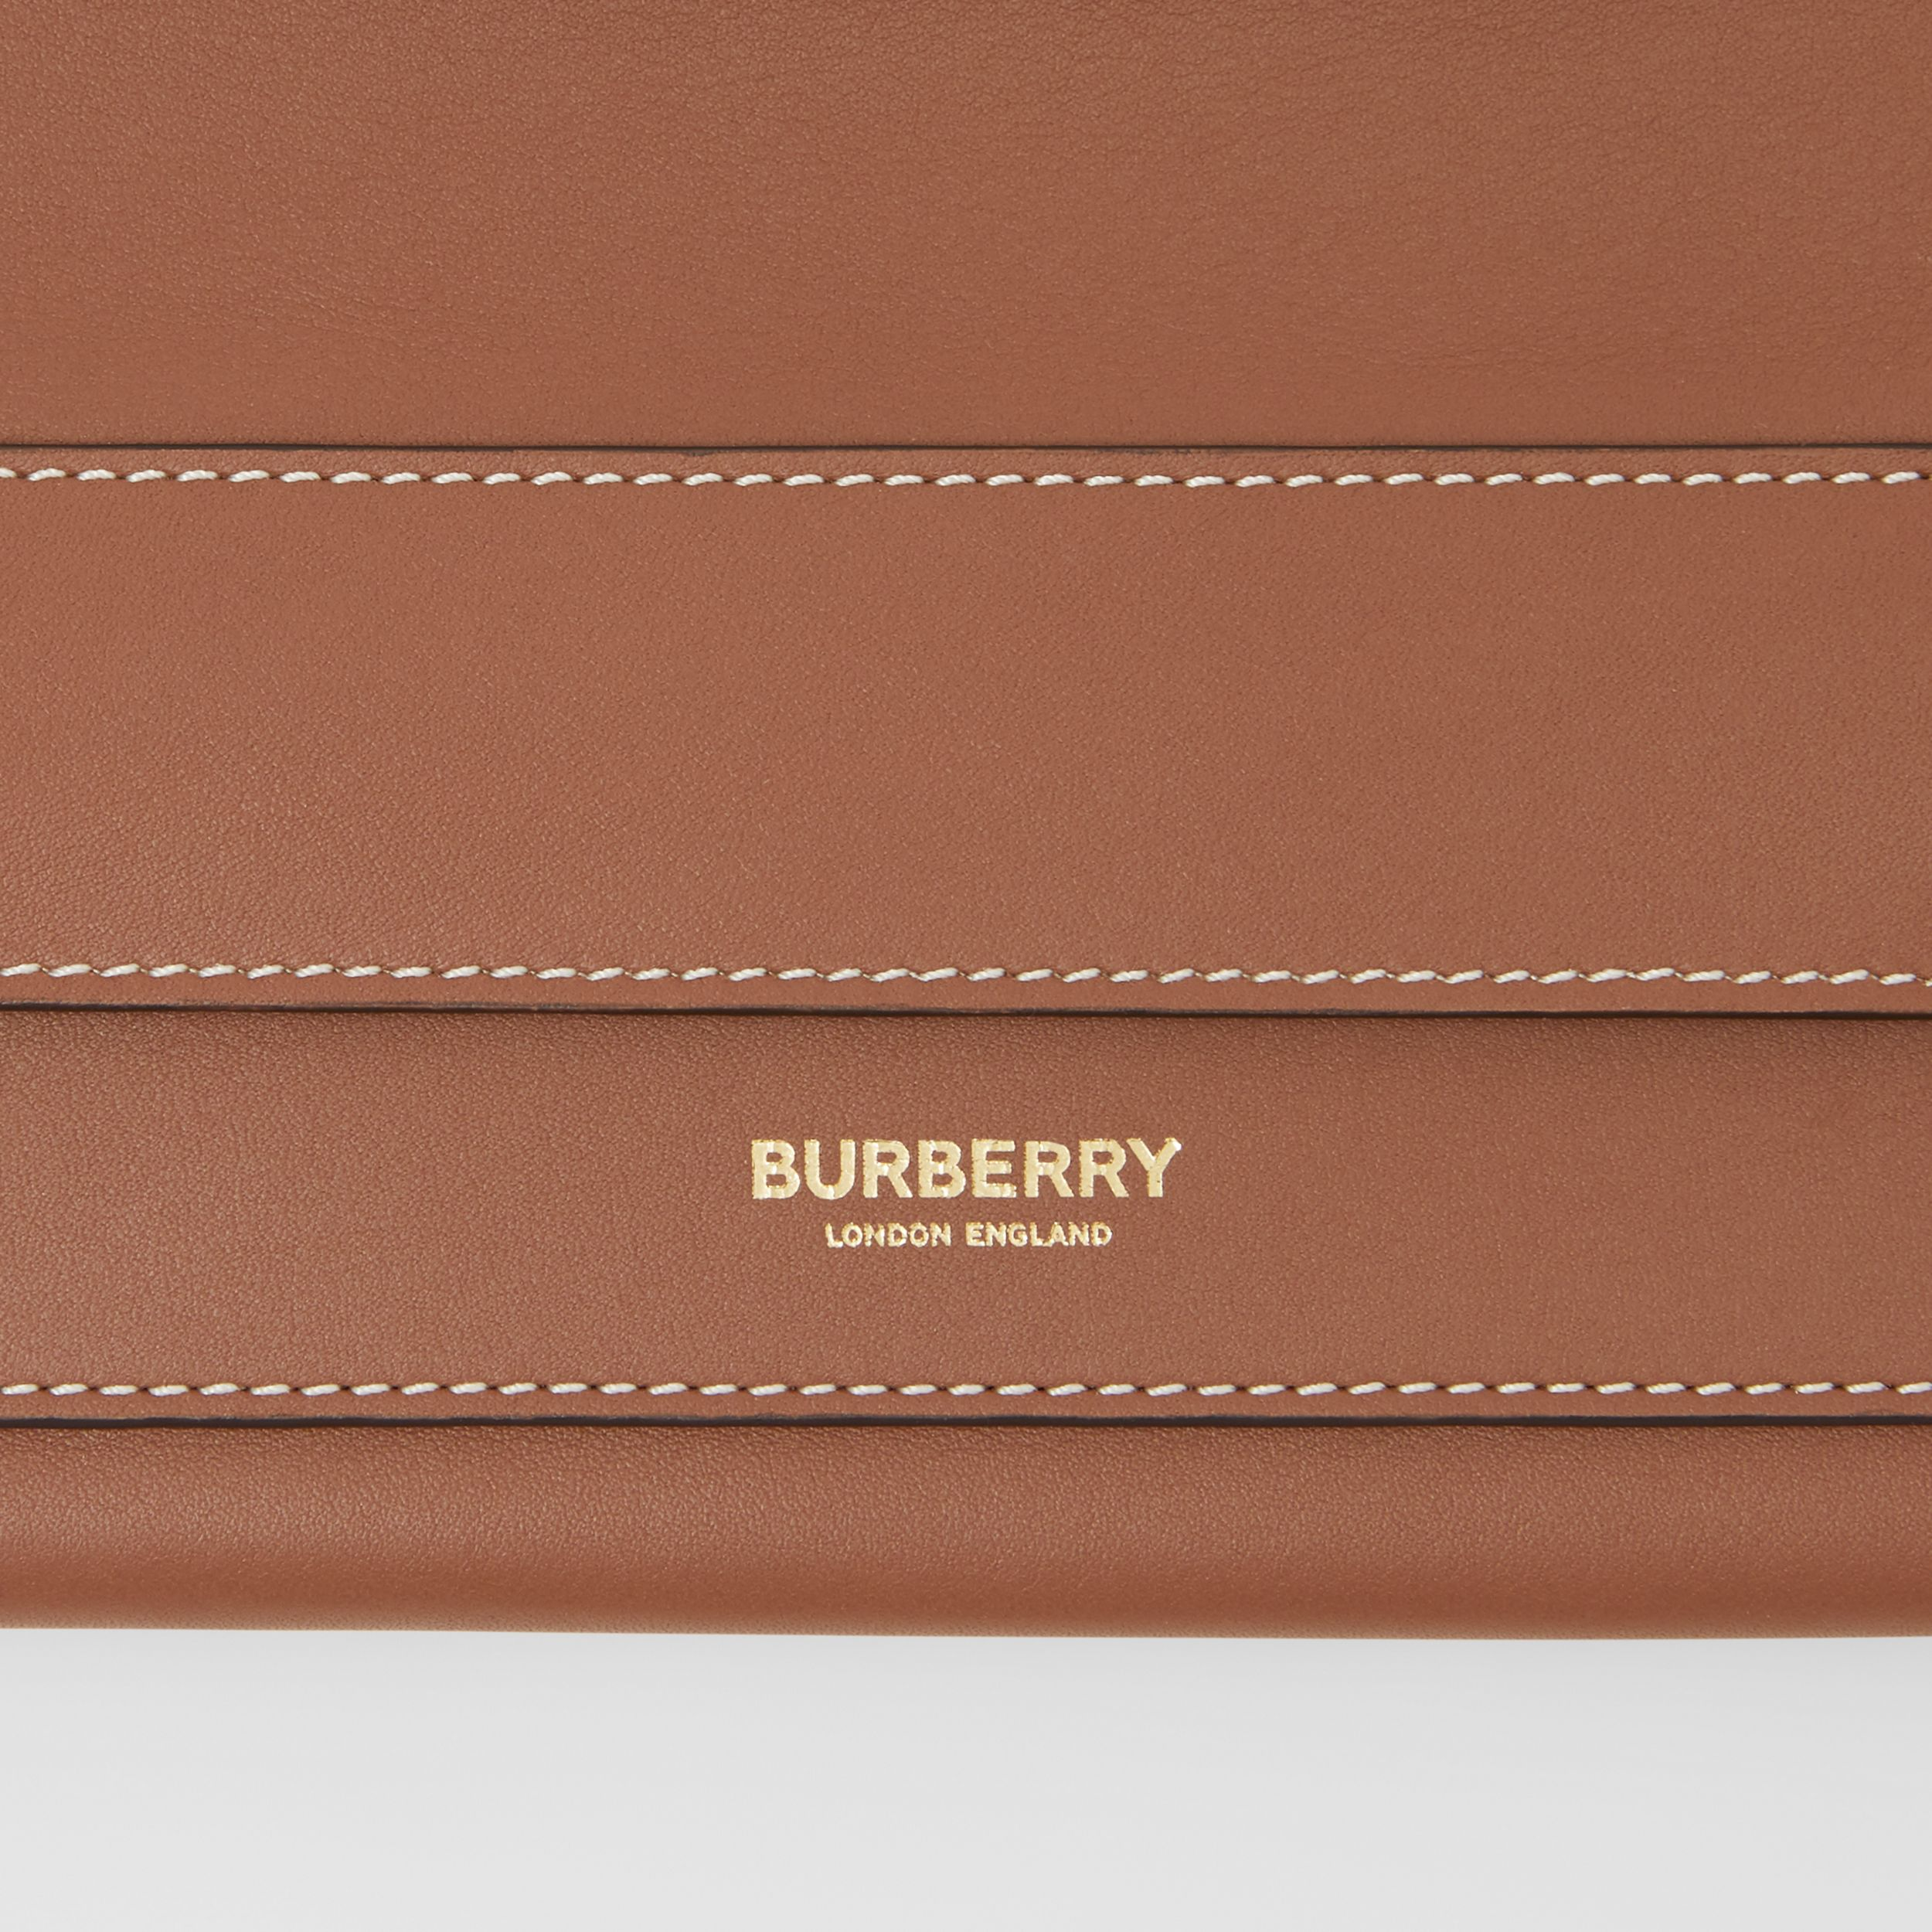 Mini Topstitched Lambskin Pocket Clutch in Malt Brown - Women | Burberry - 2